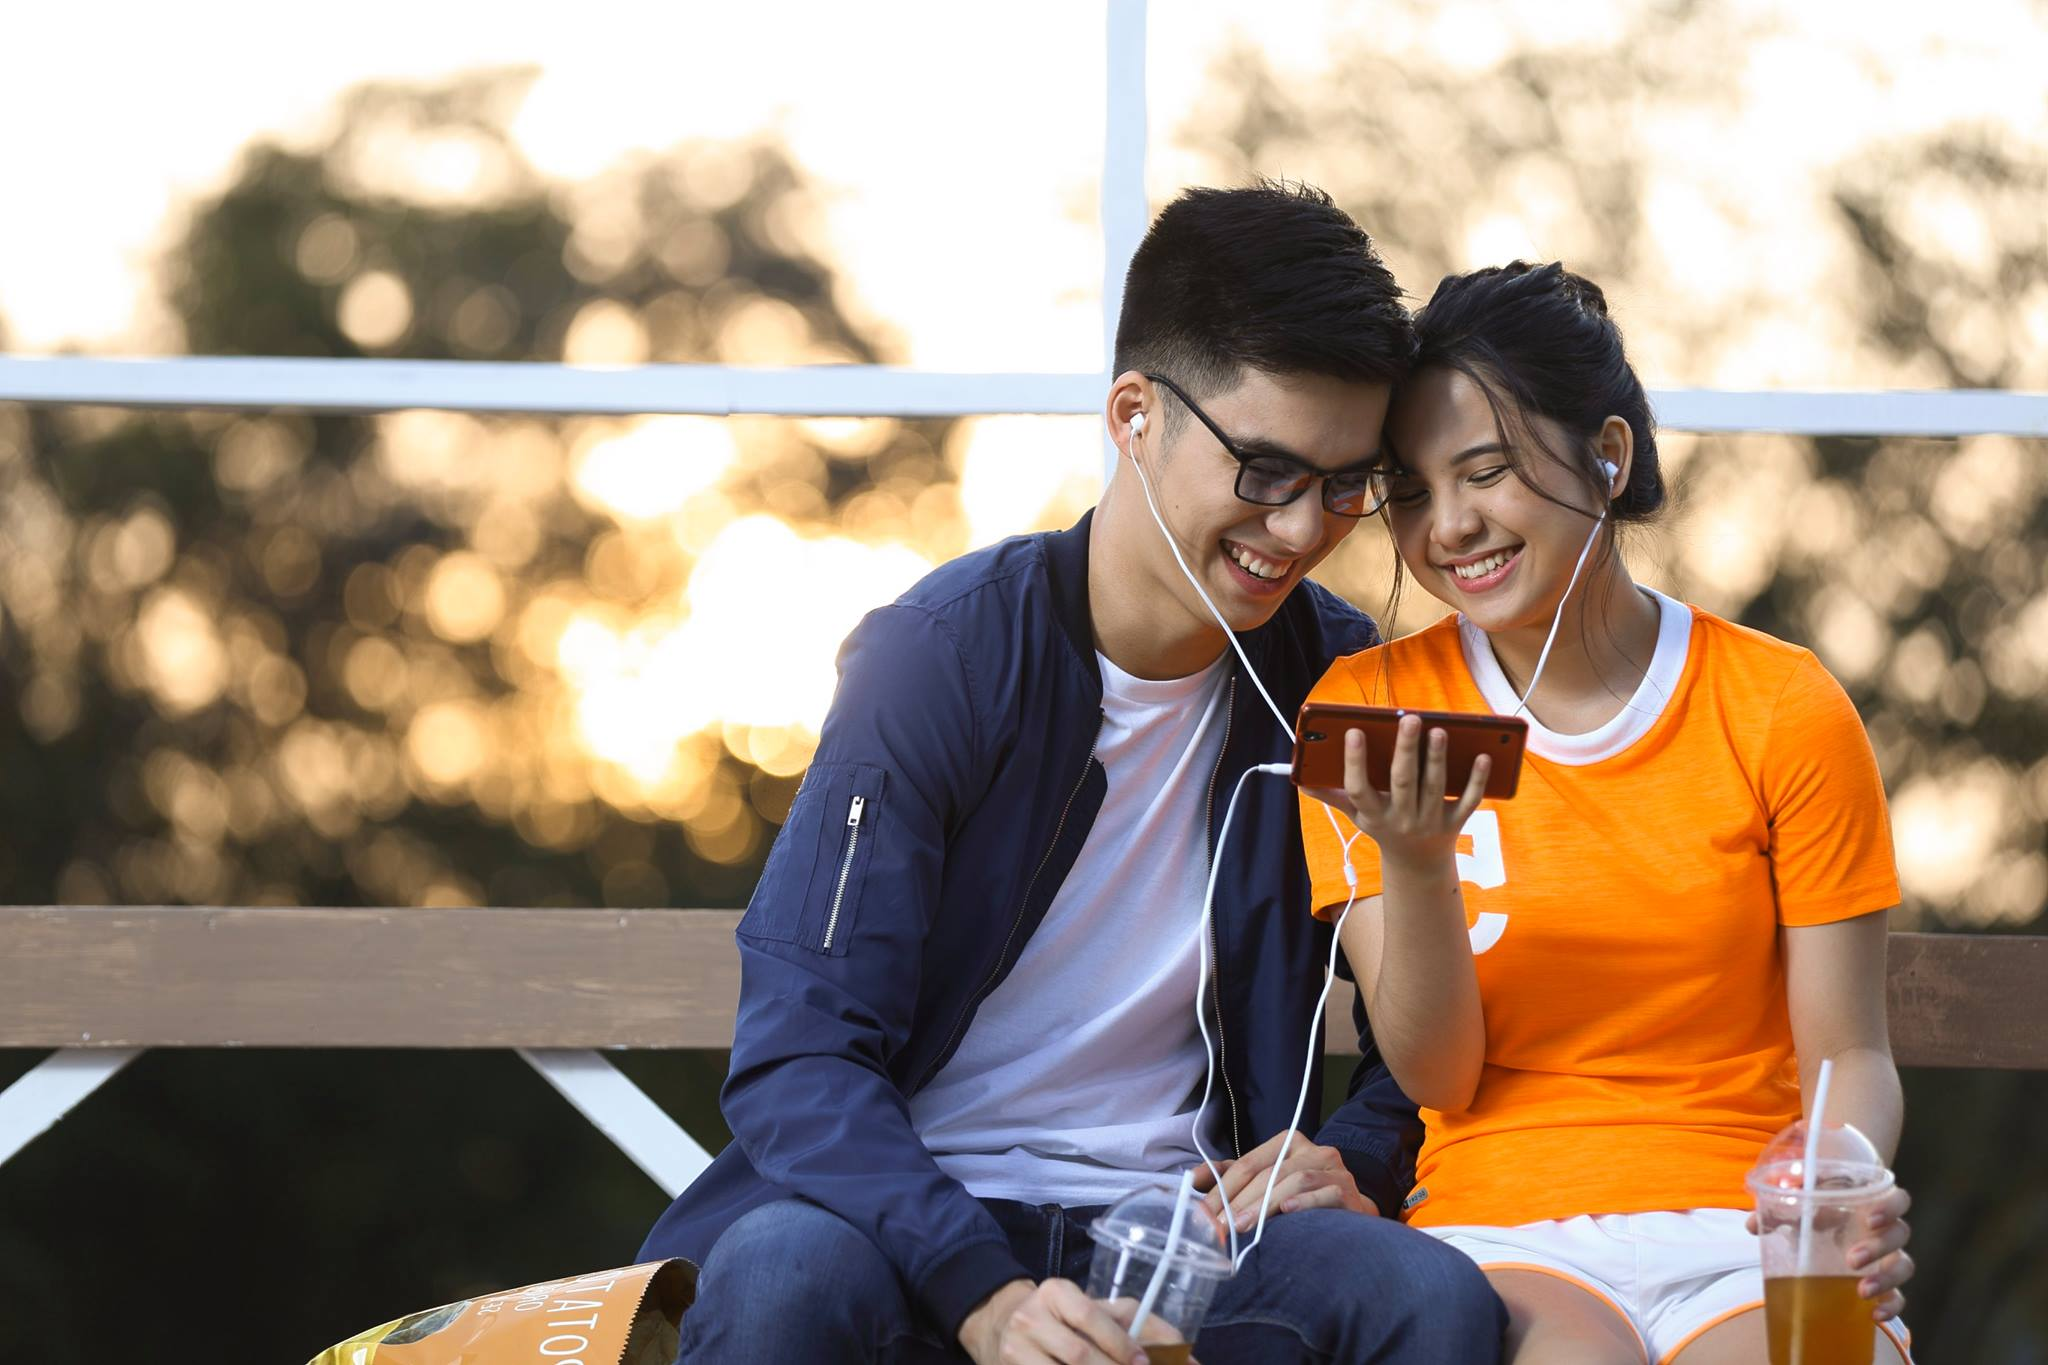 tnt sharethedata, Valentine's Day is never over with TNT's latest #ShareTheData promo, Gadget Pilipinas